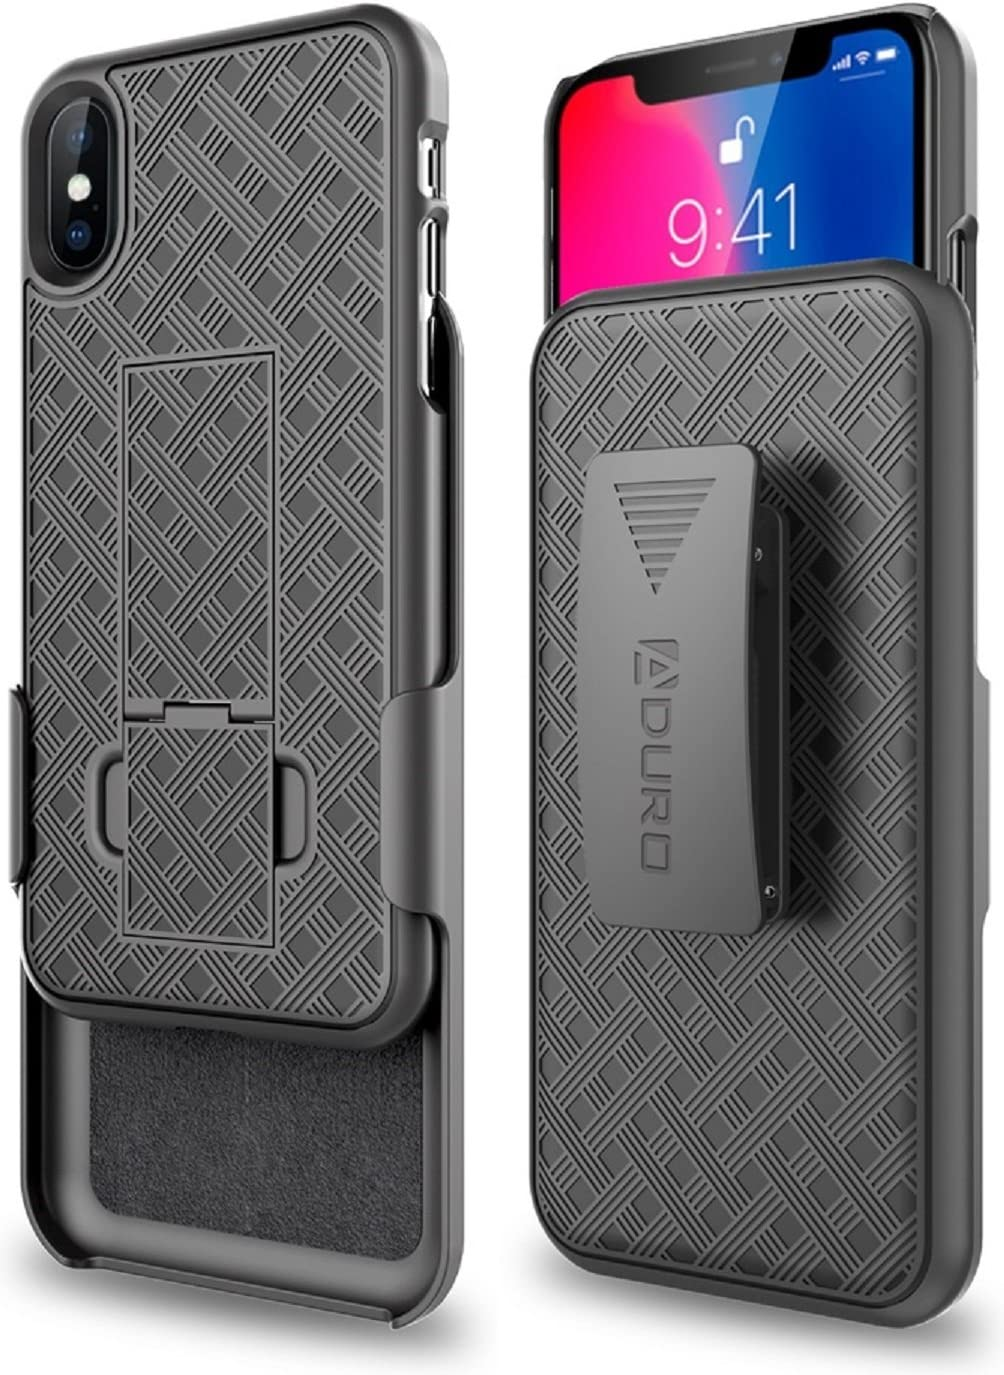 Aduro iPhone X/XS Holster Case, Combo Shell & Holster Case - Super Slim Shell Case with Built-in Kickstand, Swivel Belt Clip Holster for Apple iPhone X/XS/iPhone 10 (2018/2017)